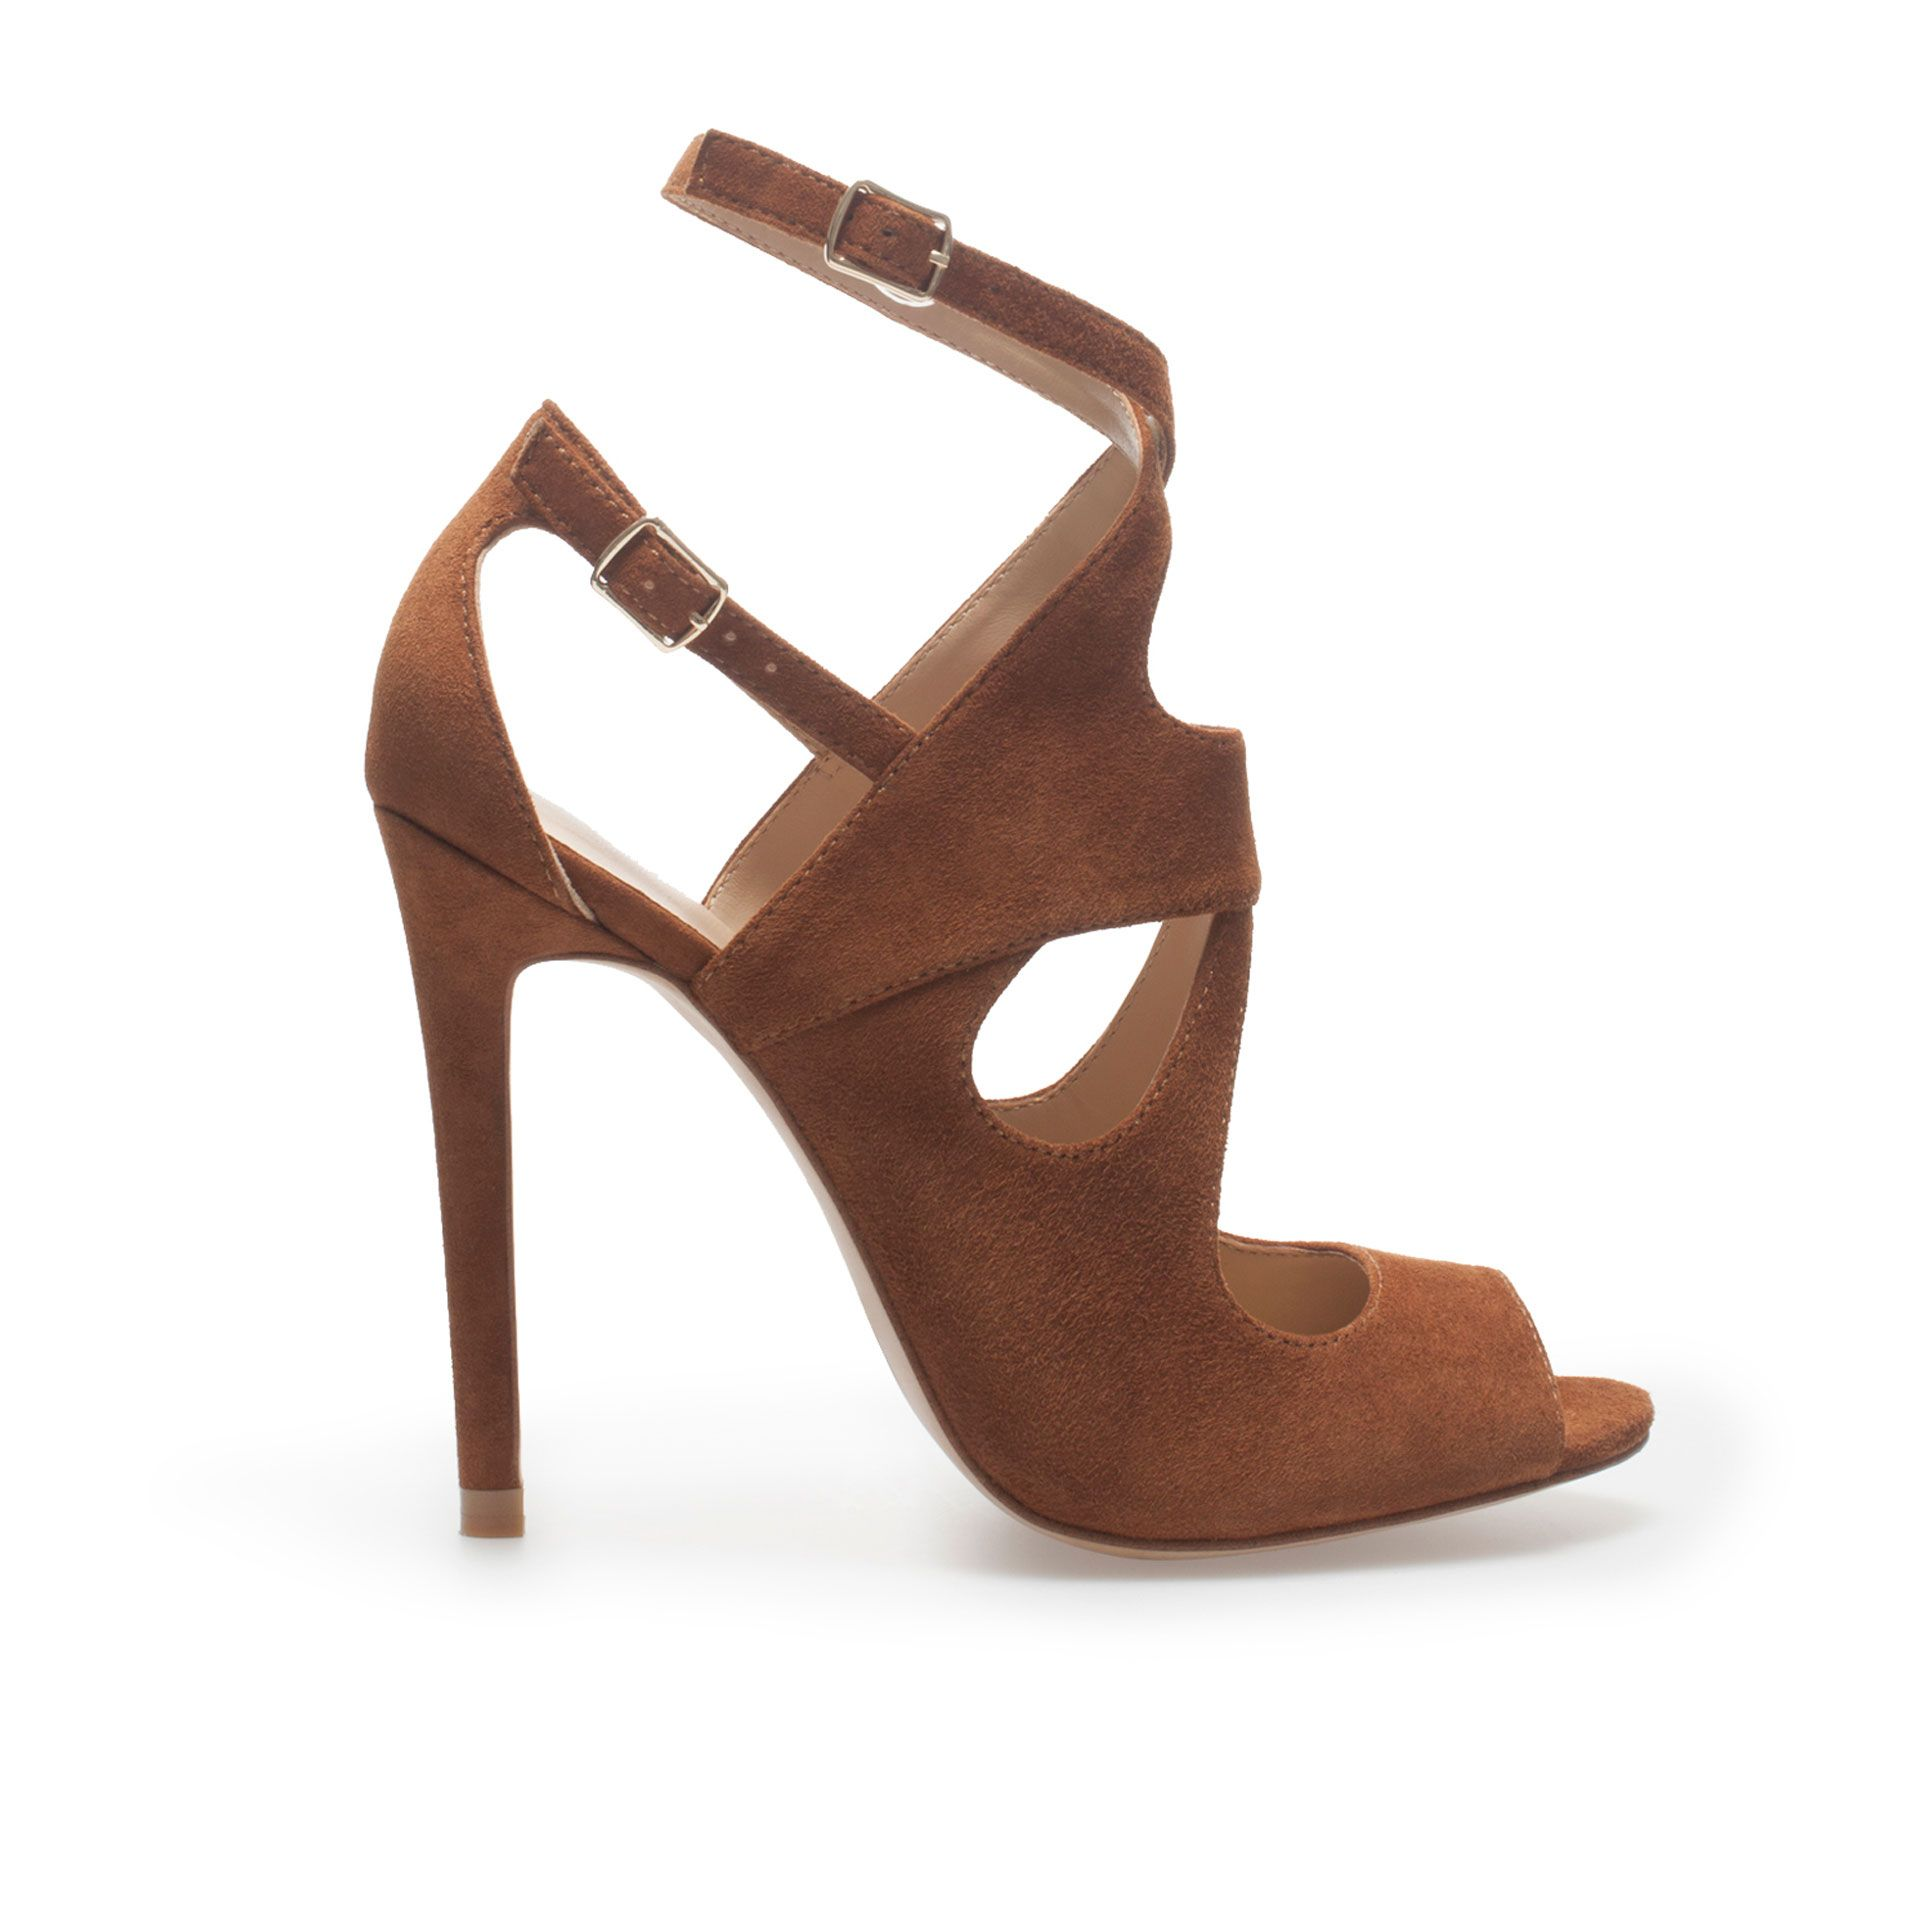 outlet on sale save off good selling MULTI-STRAP HIGH HEEL SANDAL - Shoes - Woman - ZARA United States ...